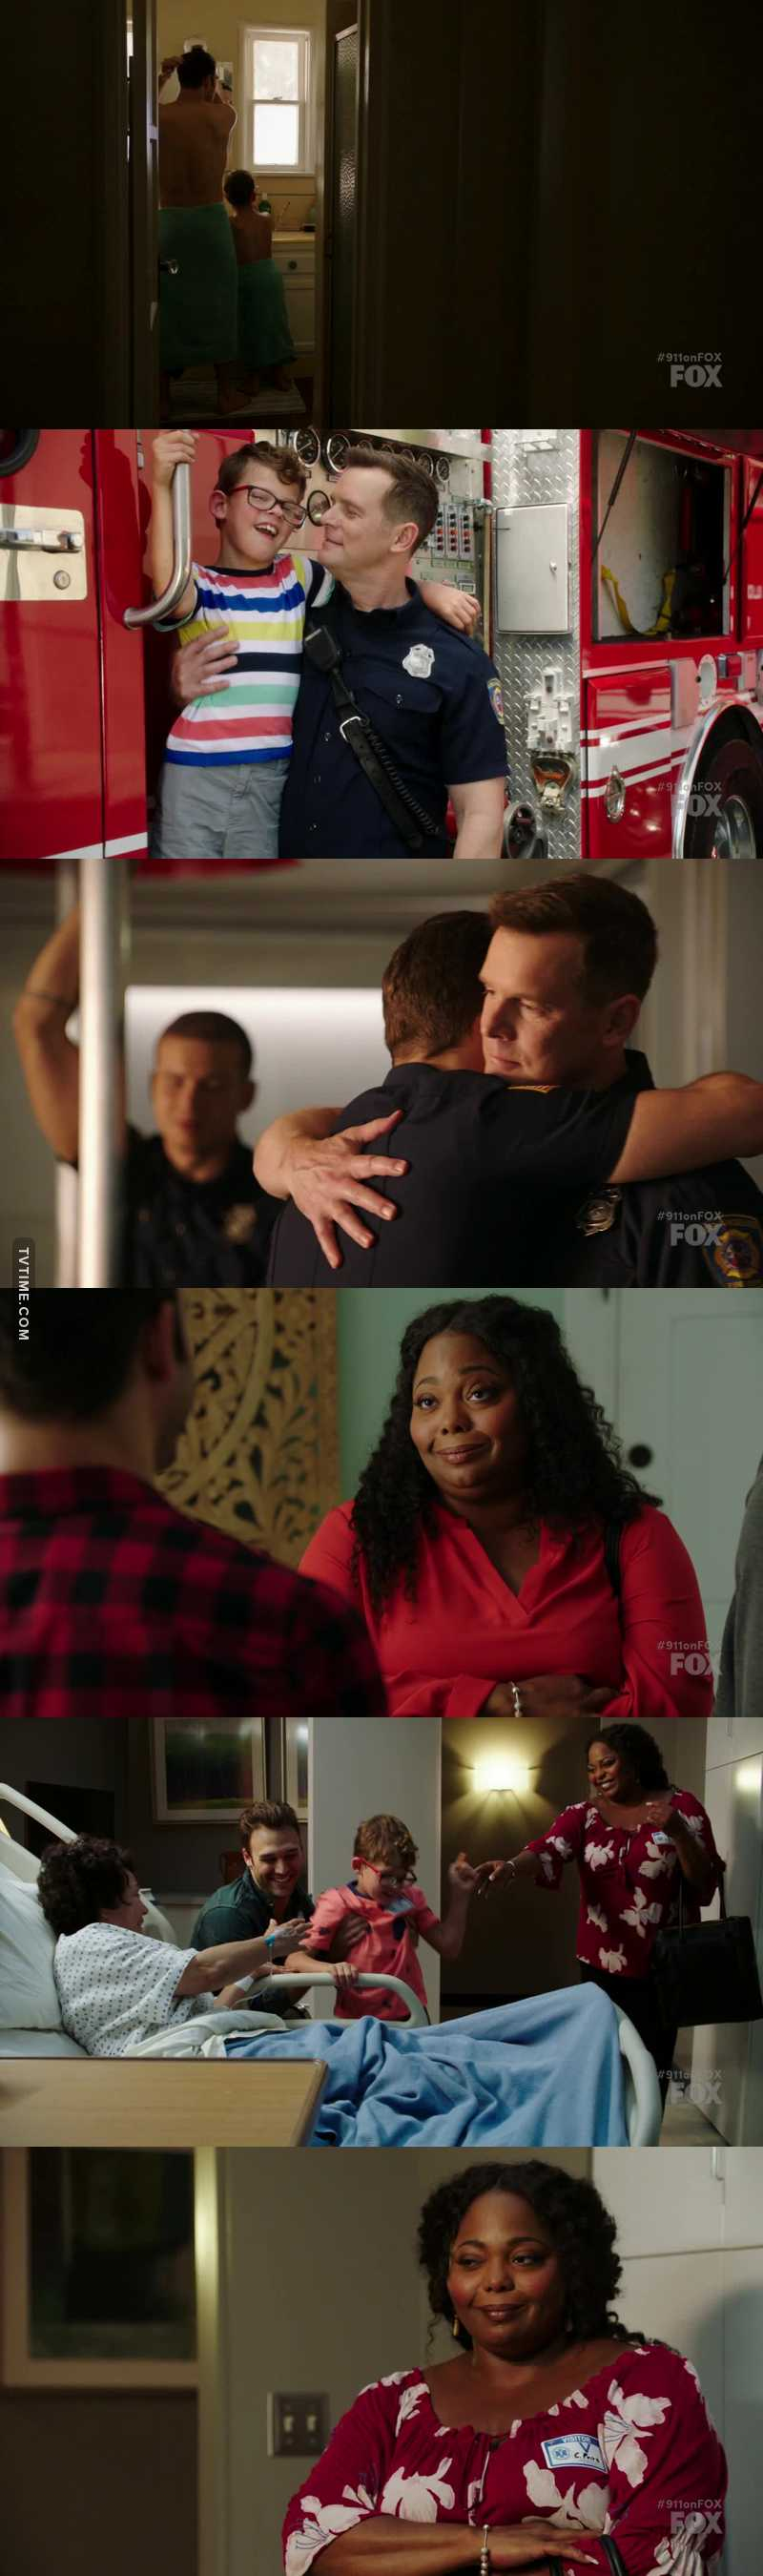 This episode was amazing. 😍 Eddie and his son, Christopher and the team. So cute 🤗 My girl is back! Carla, I love you! ❤